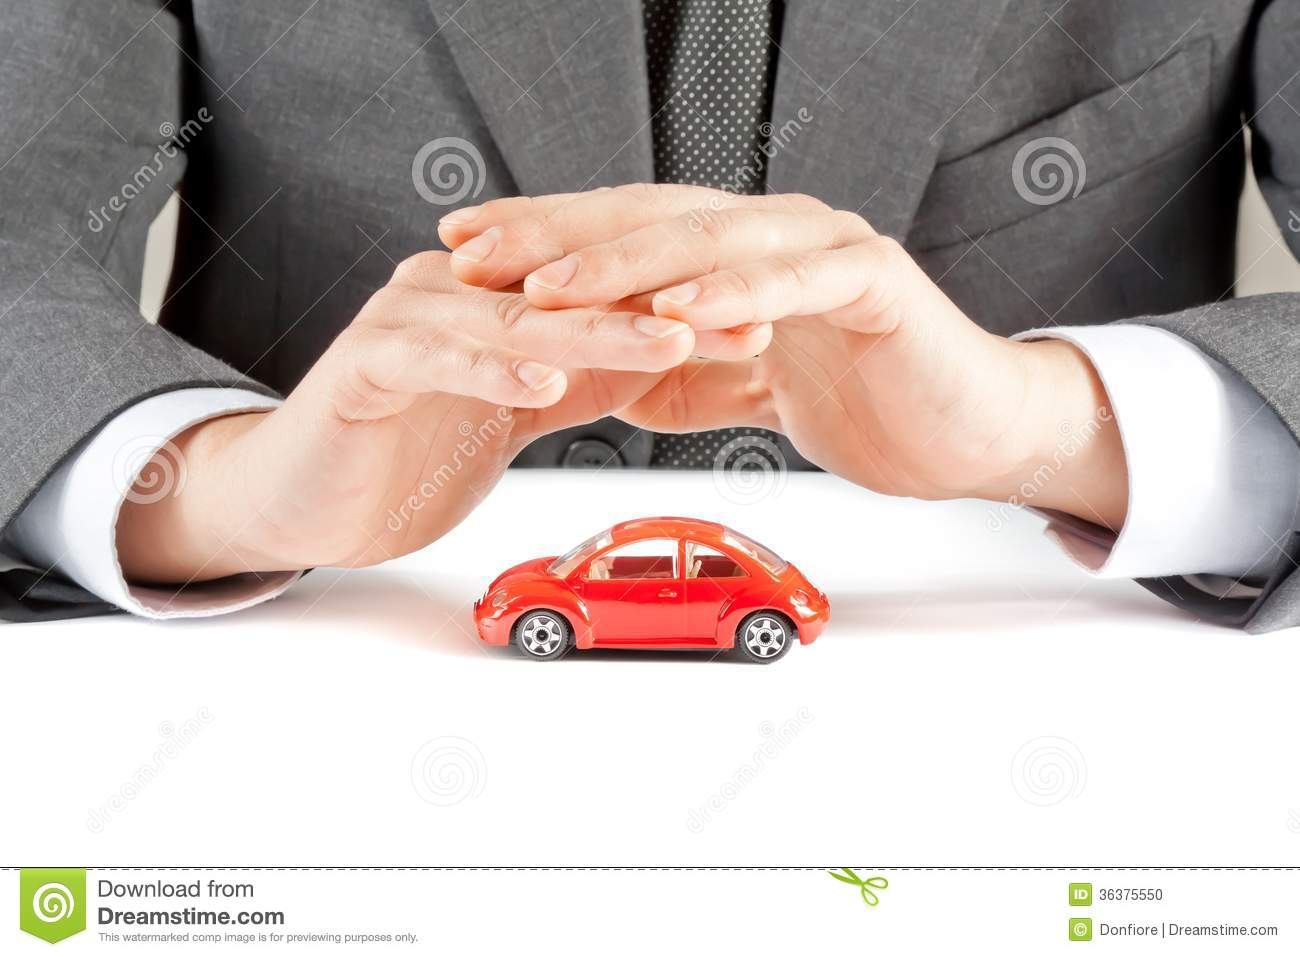 protect with his hands a red car on white table, concept for insurance